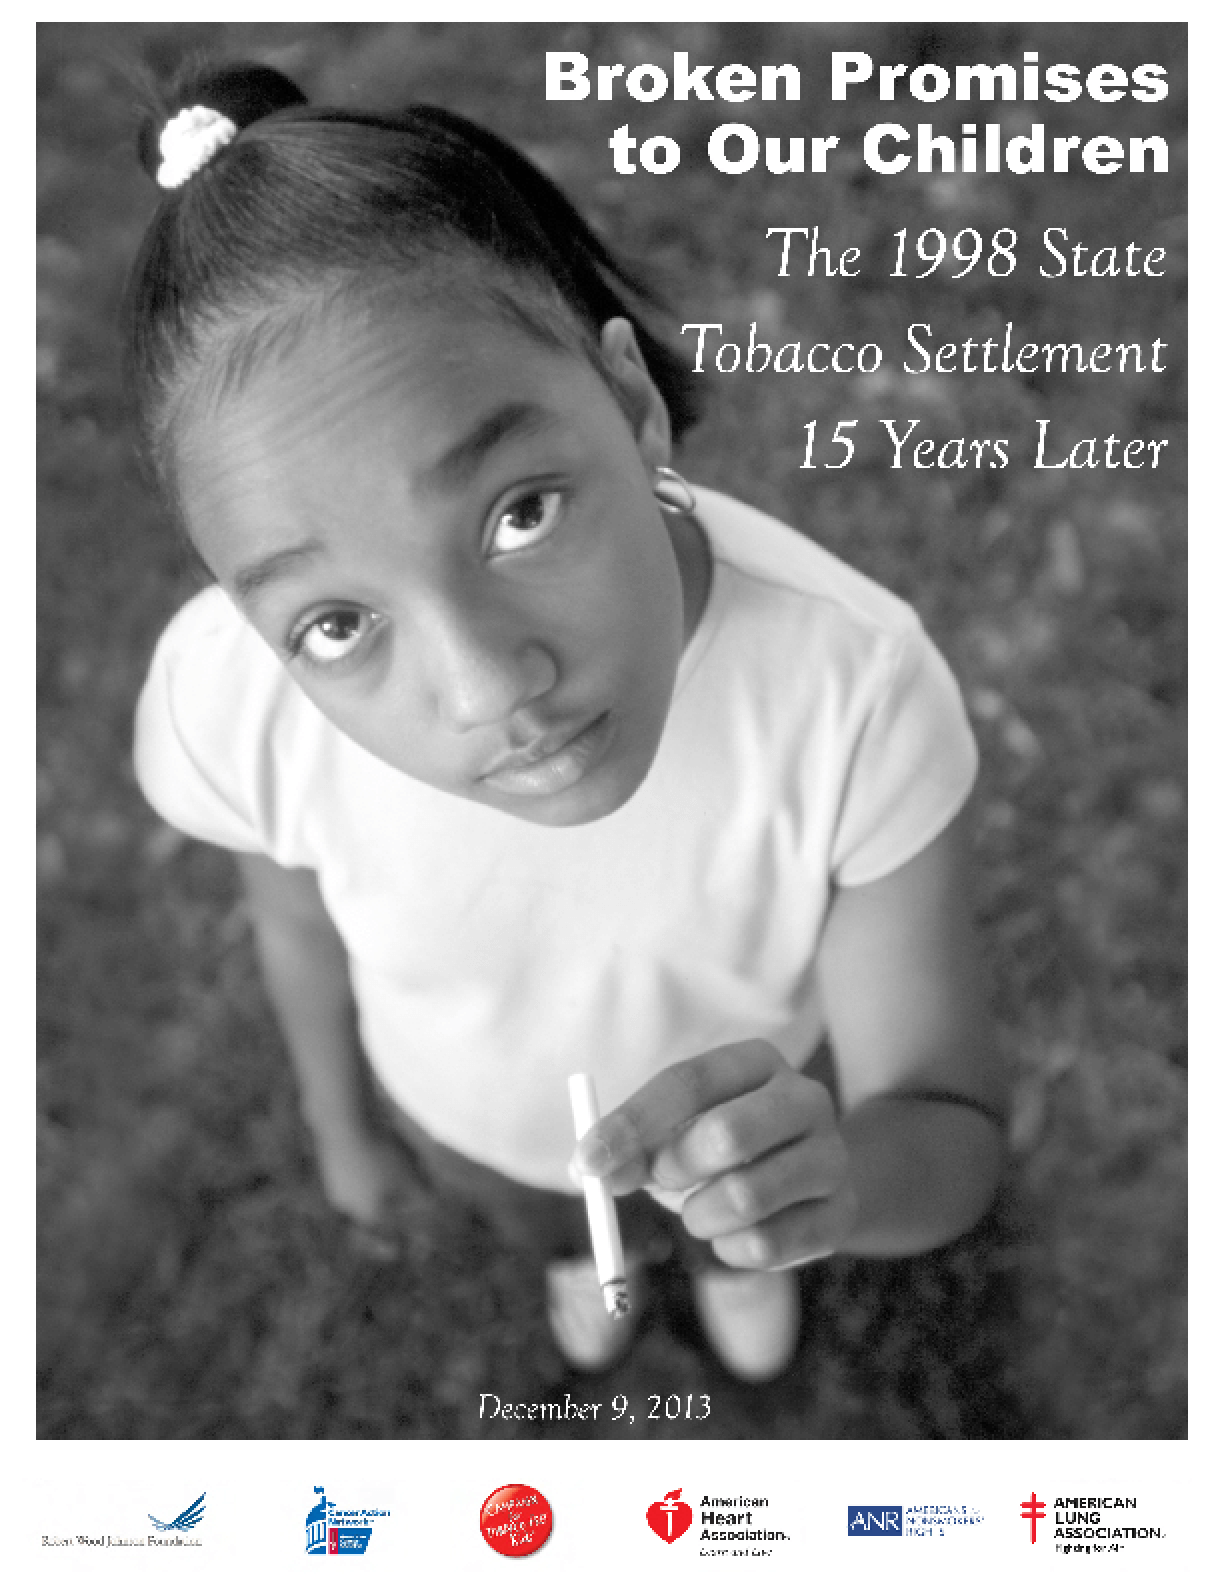 Broken Promises to Our Children: The 1998 State Tobacco Settlement 15 Years Later